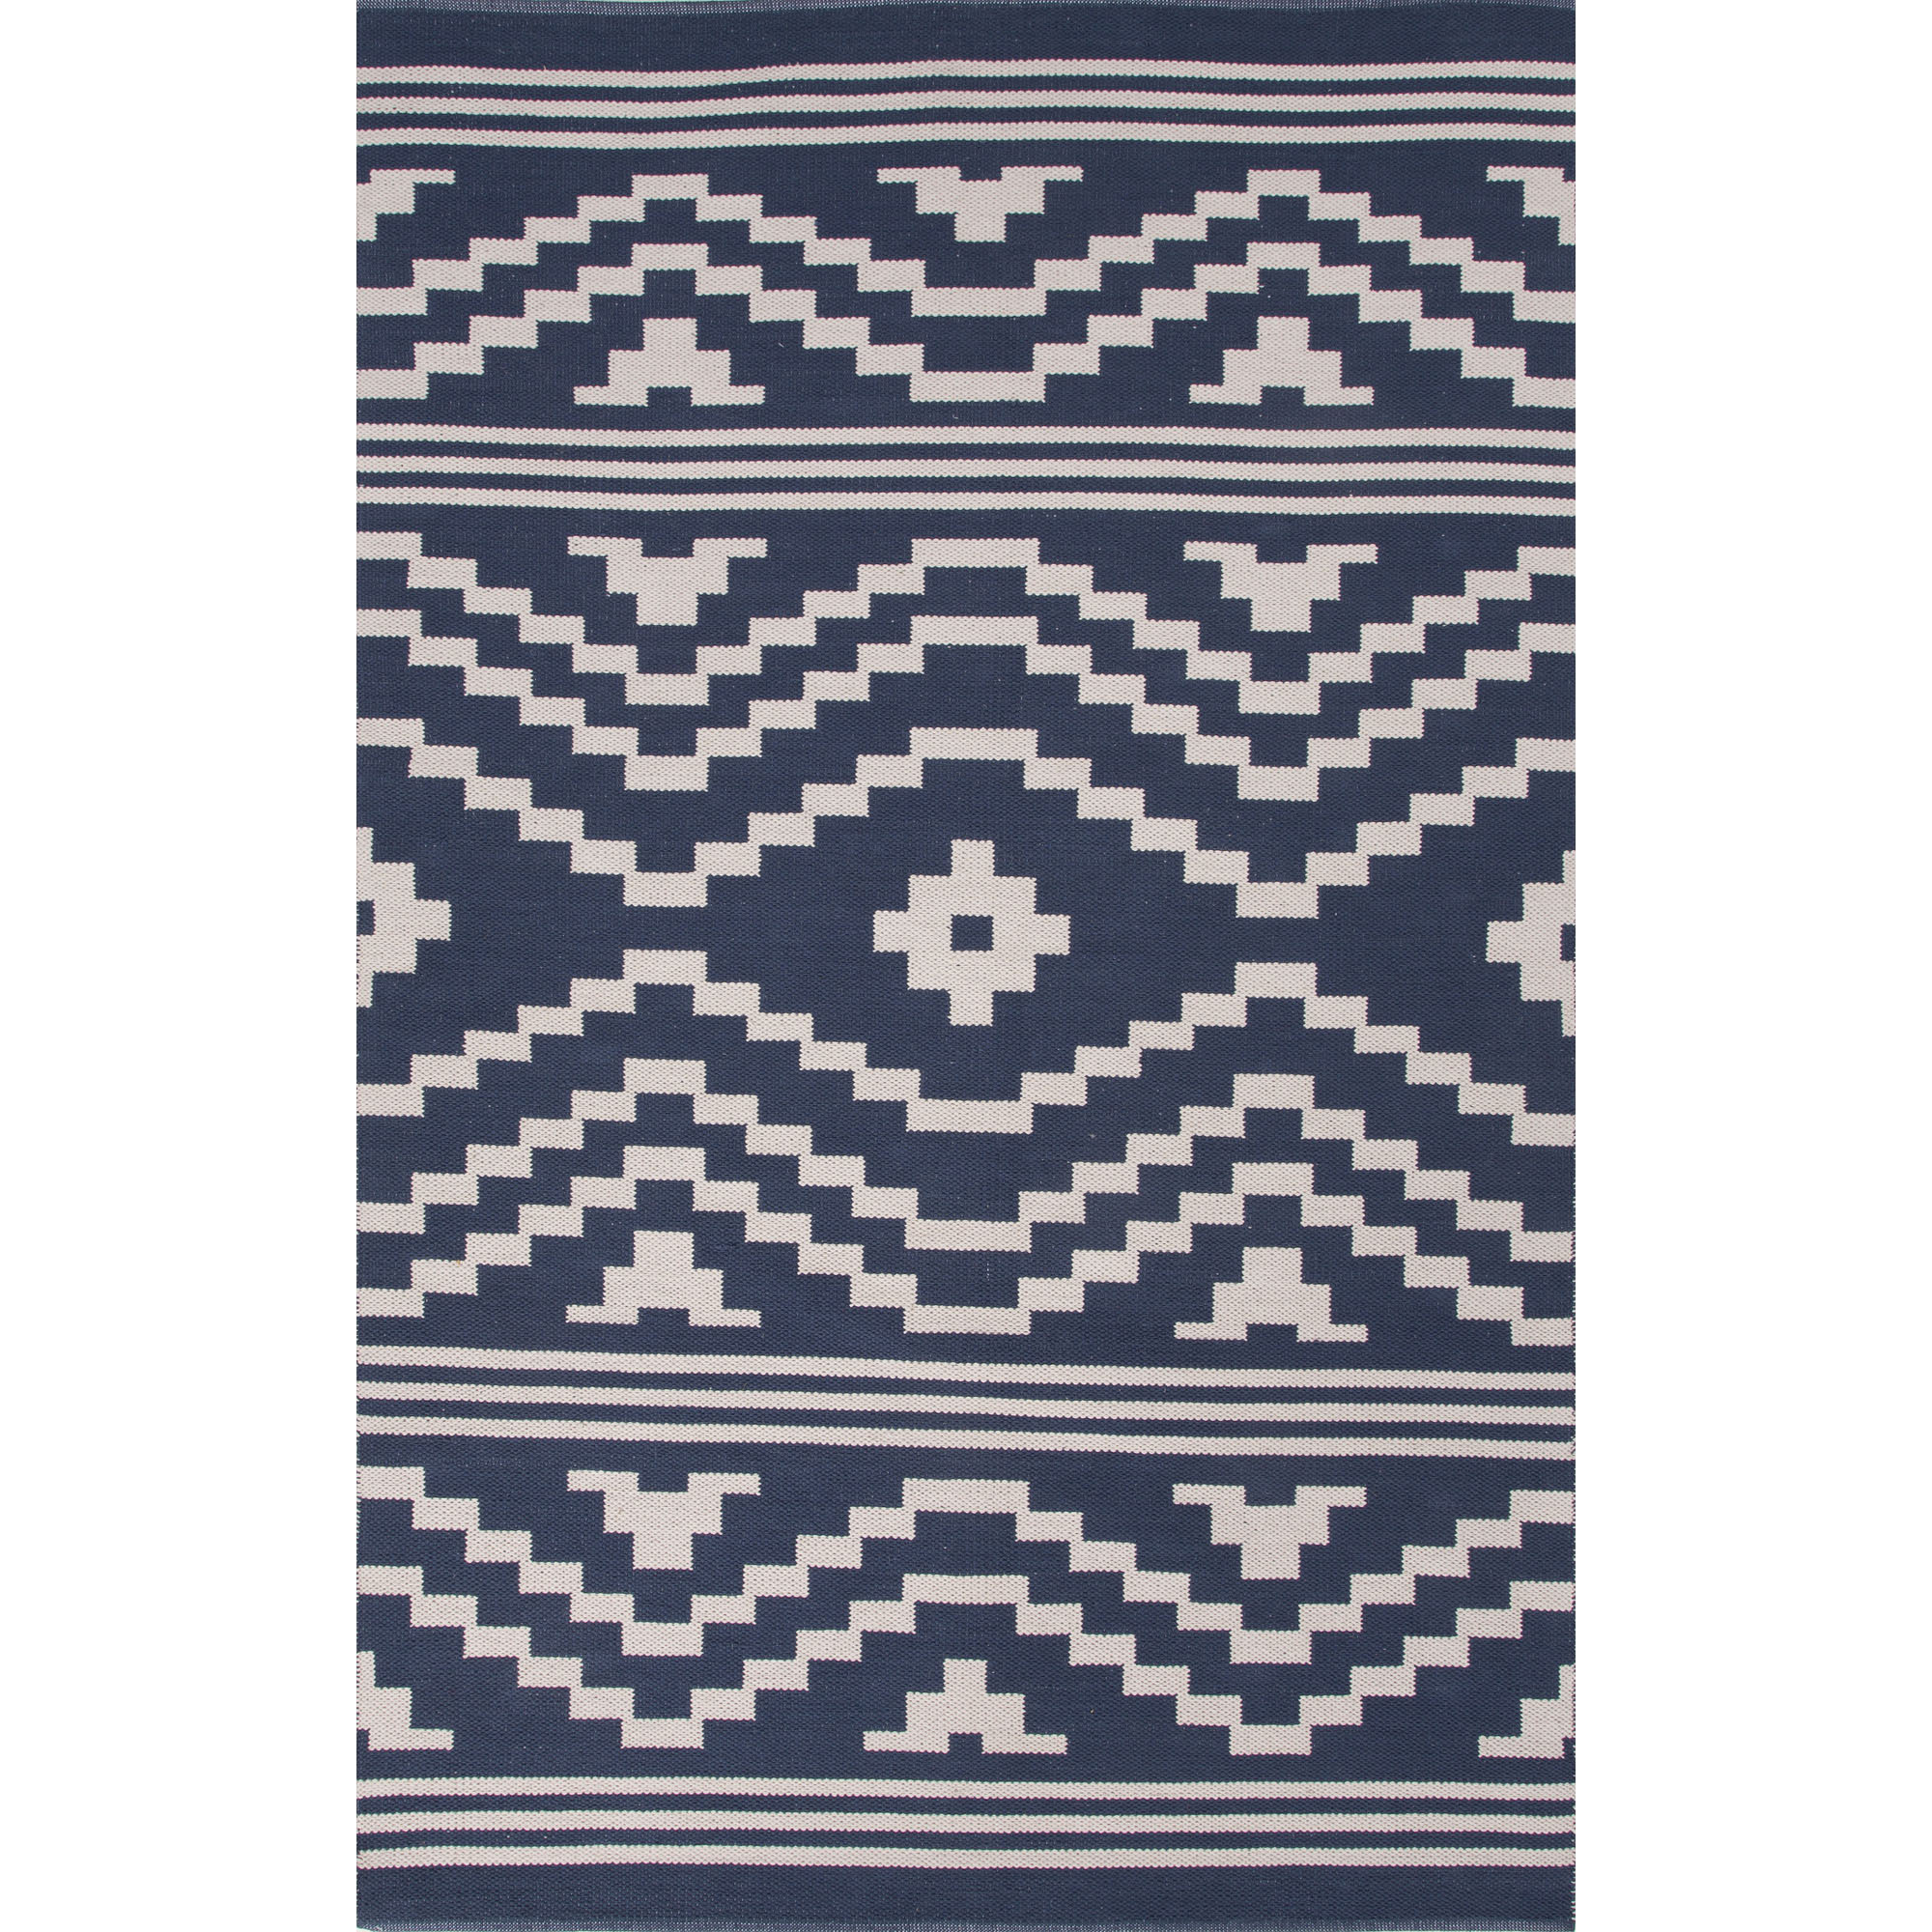 Traditions Modern Cotton Flat Weave 2 x 3 Rug by JAIPUR Living at Sprintz Furniture